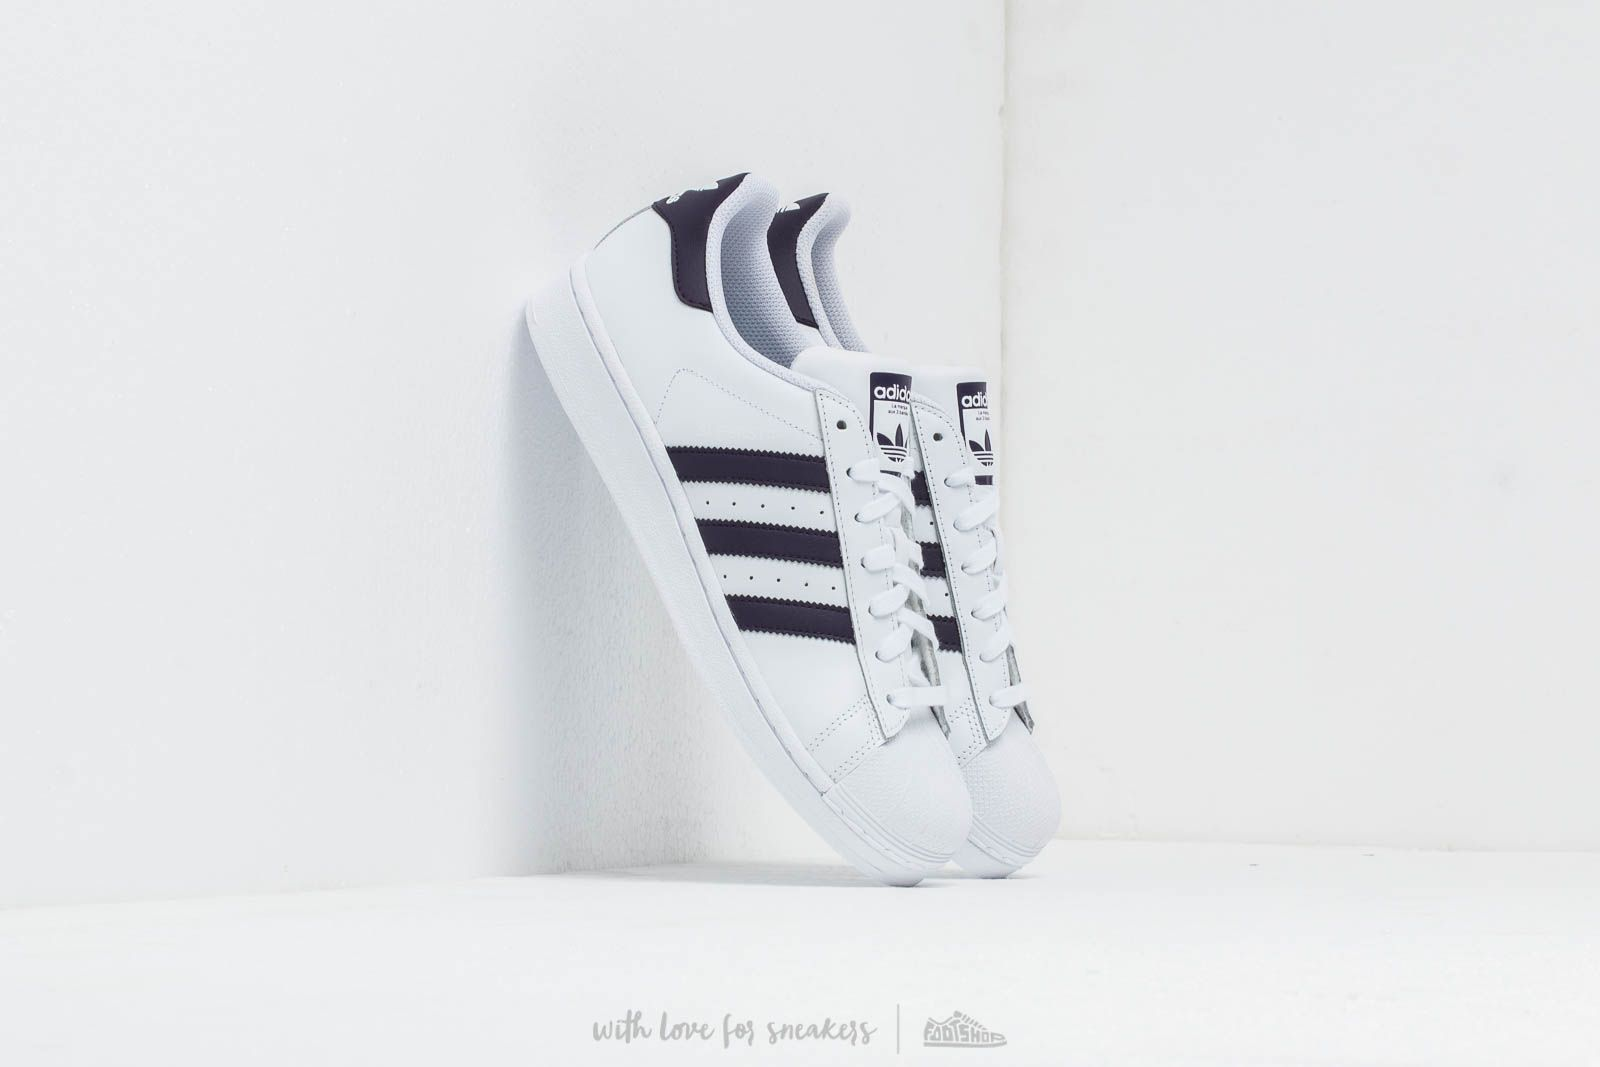 Adidas White BlackFootshop W Superstar Ftw Legpur Core 4Aq5Rjc3LS